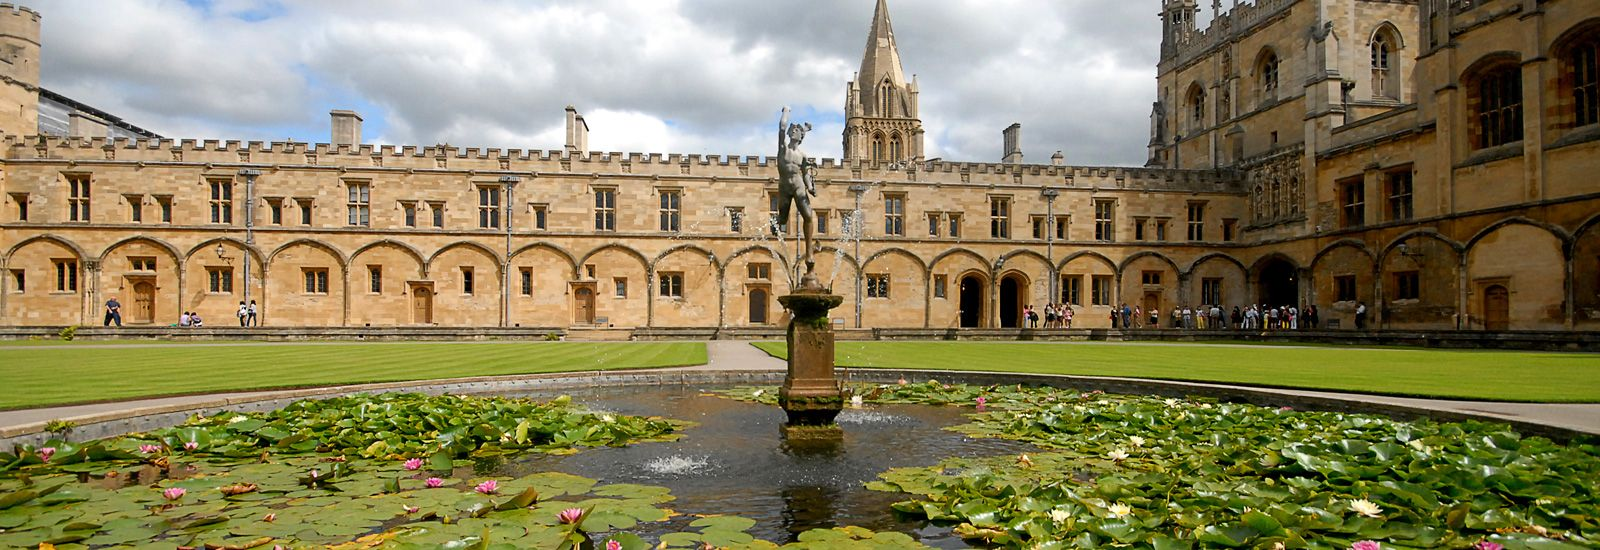 Fountain and pond in the main quad of Christ Church